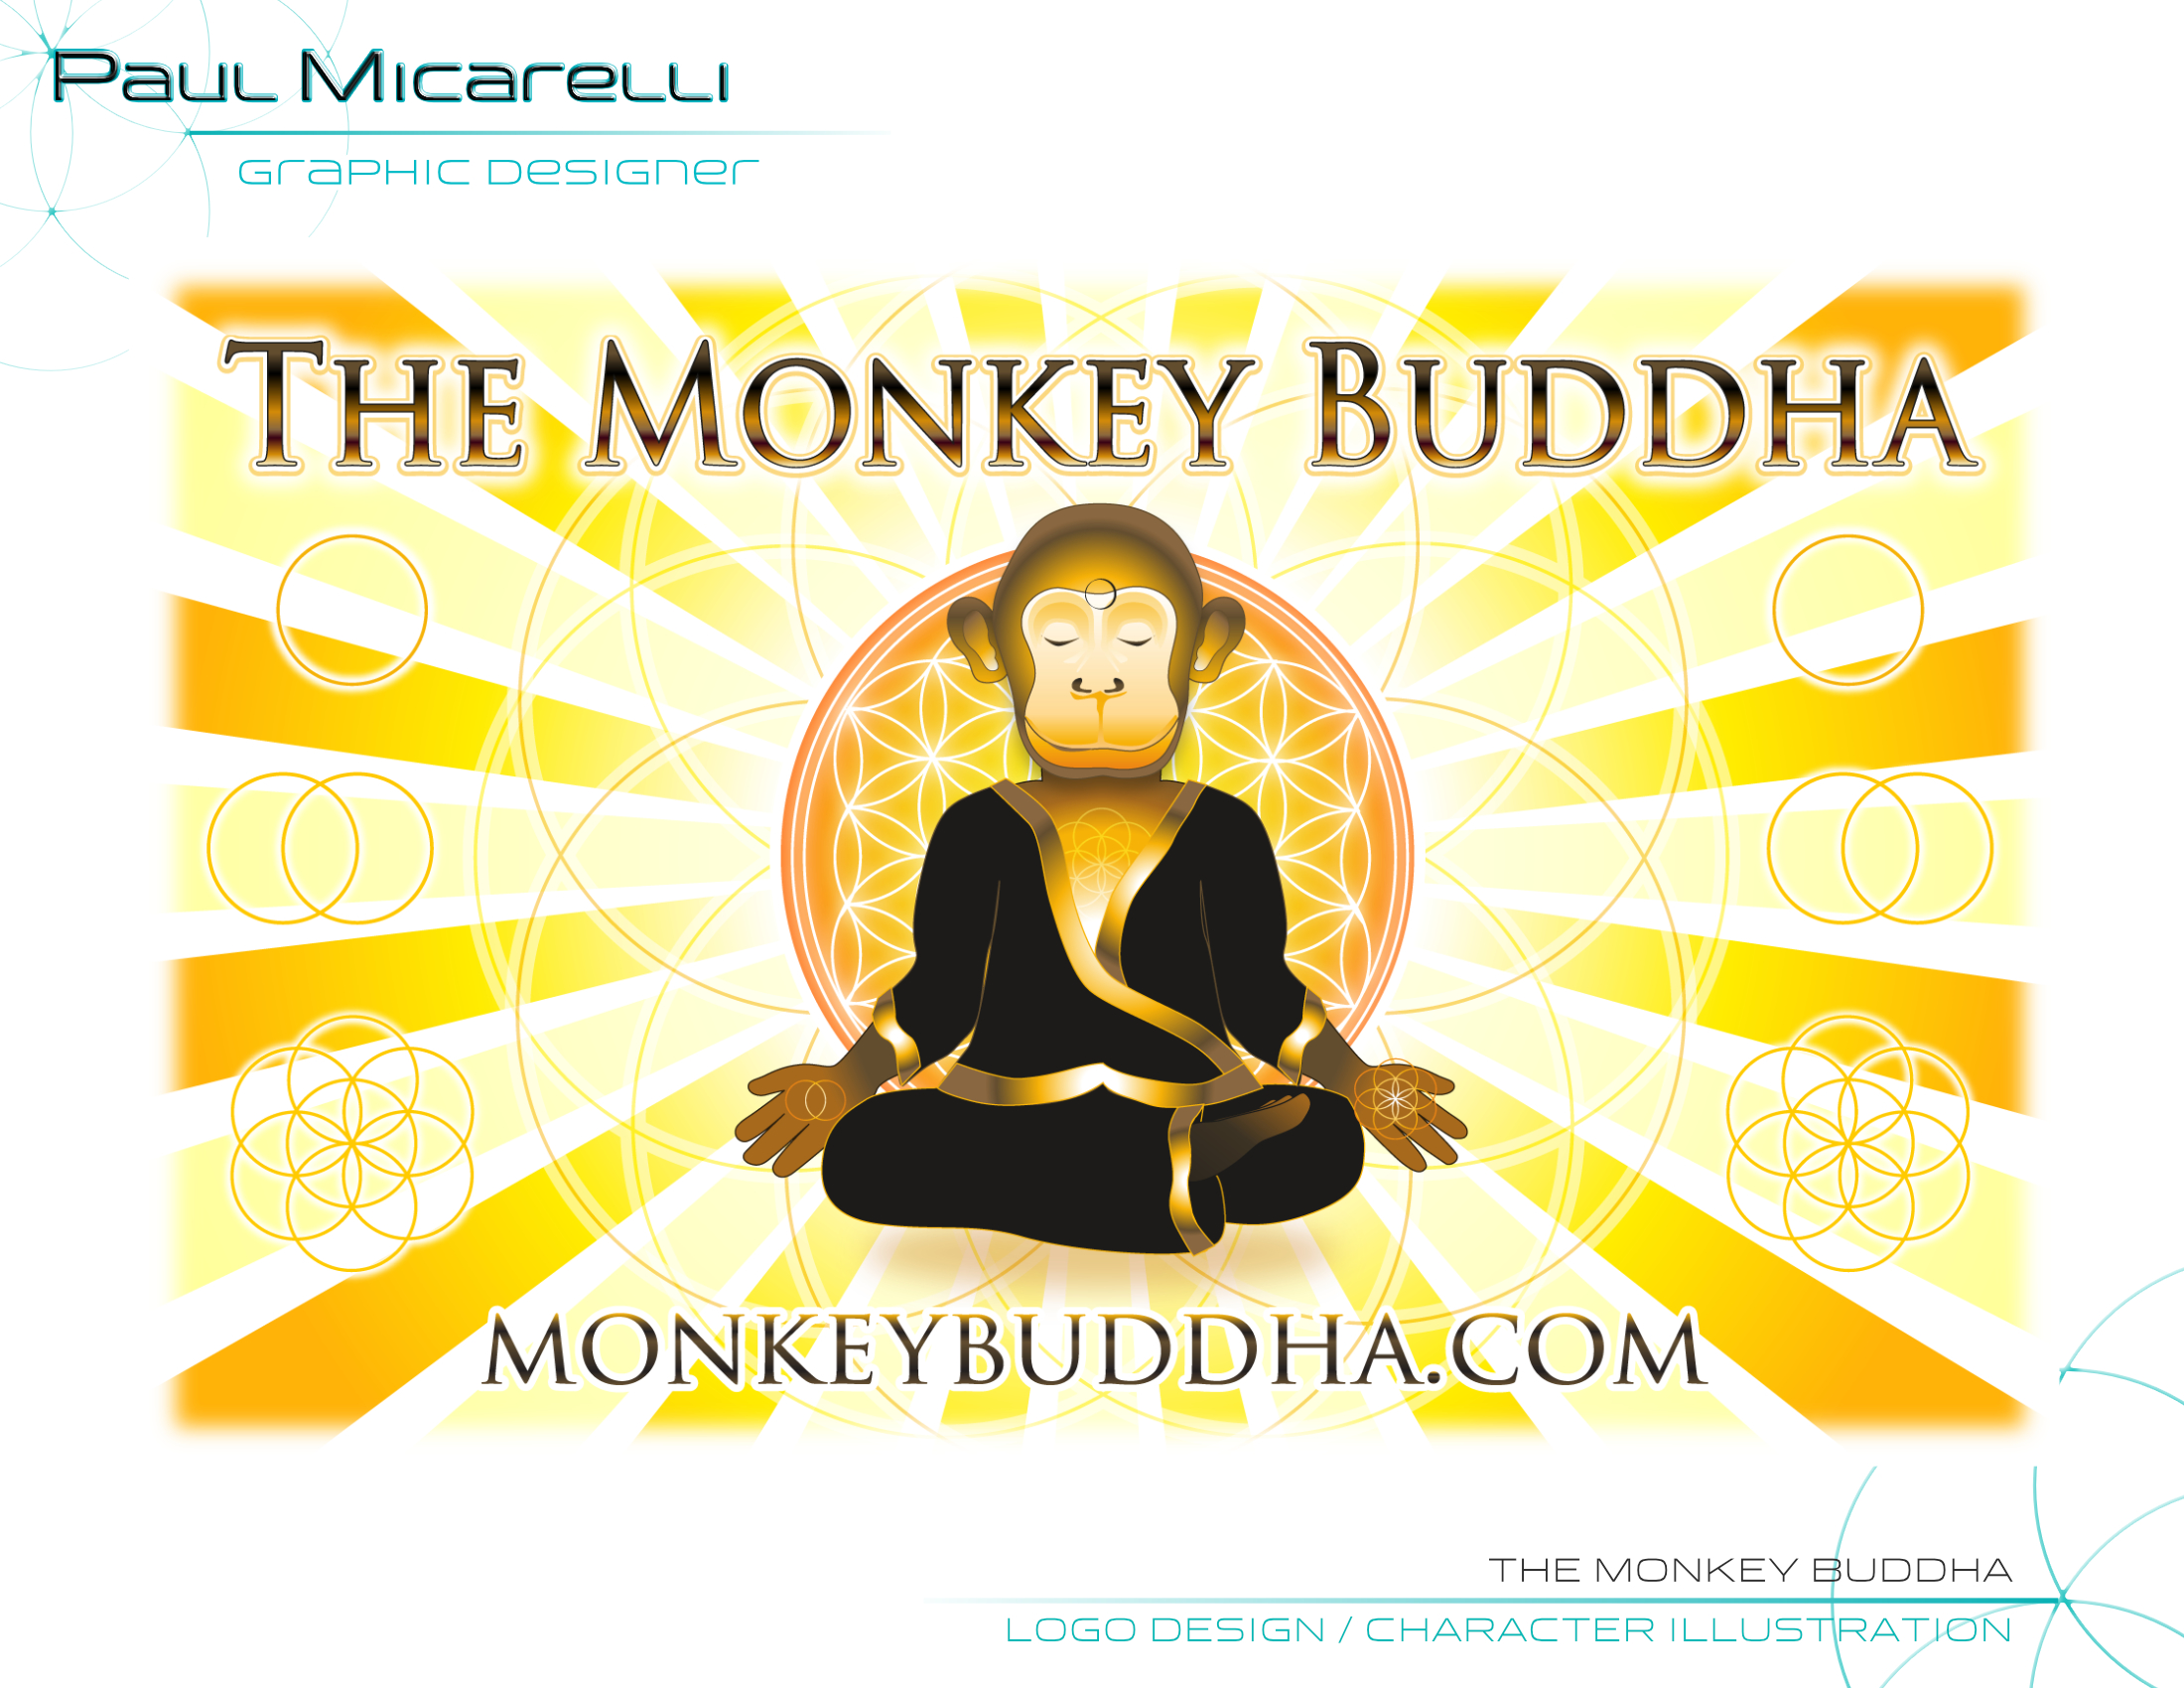 Paul-Micarelli-The Monkey Buddha Logo